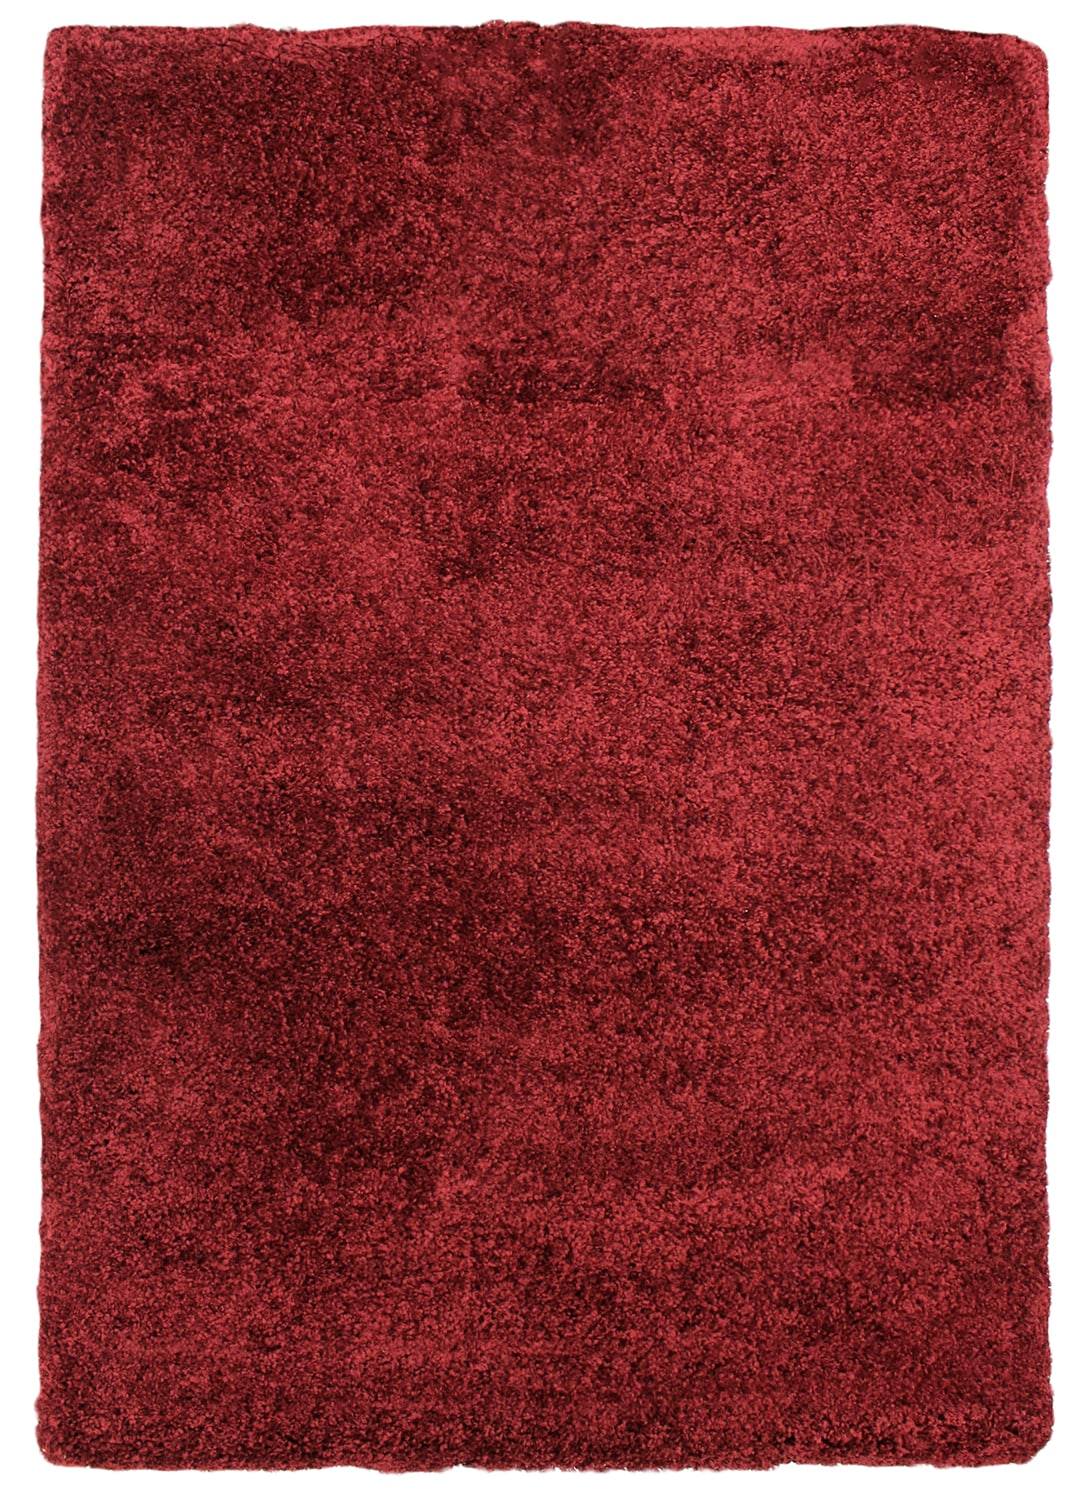 Rugs - Loft Red Shag Area Rug – 5' x 8'